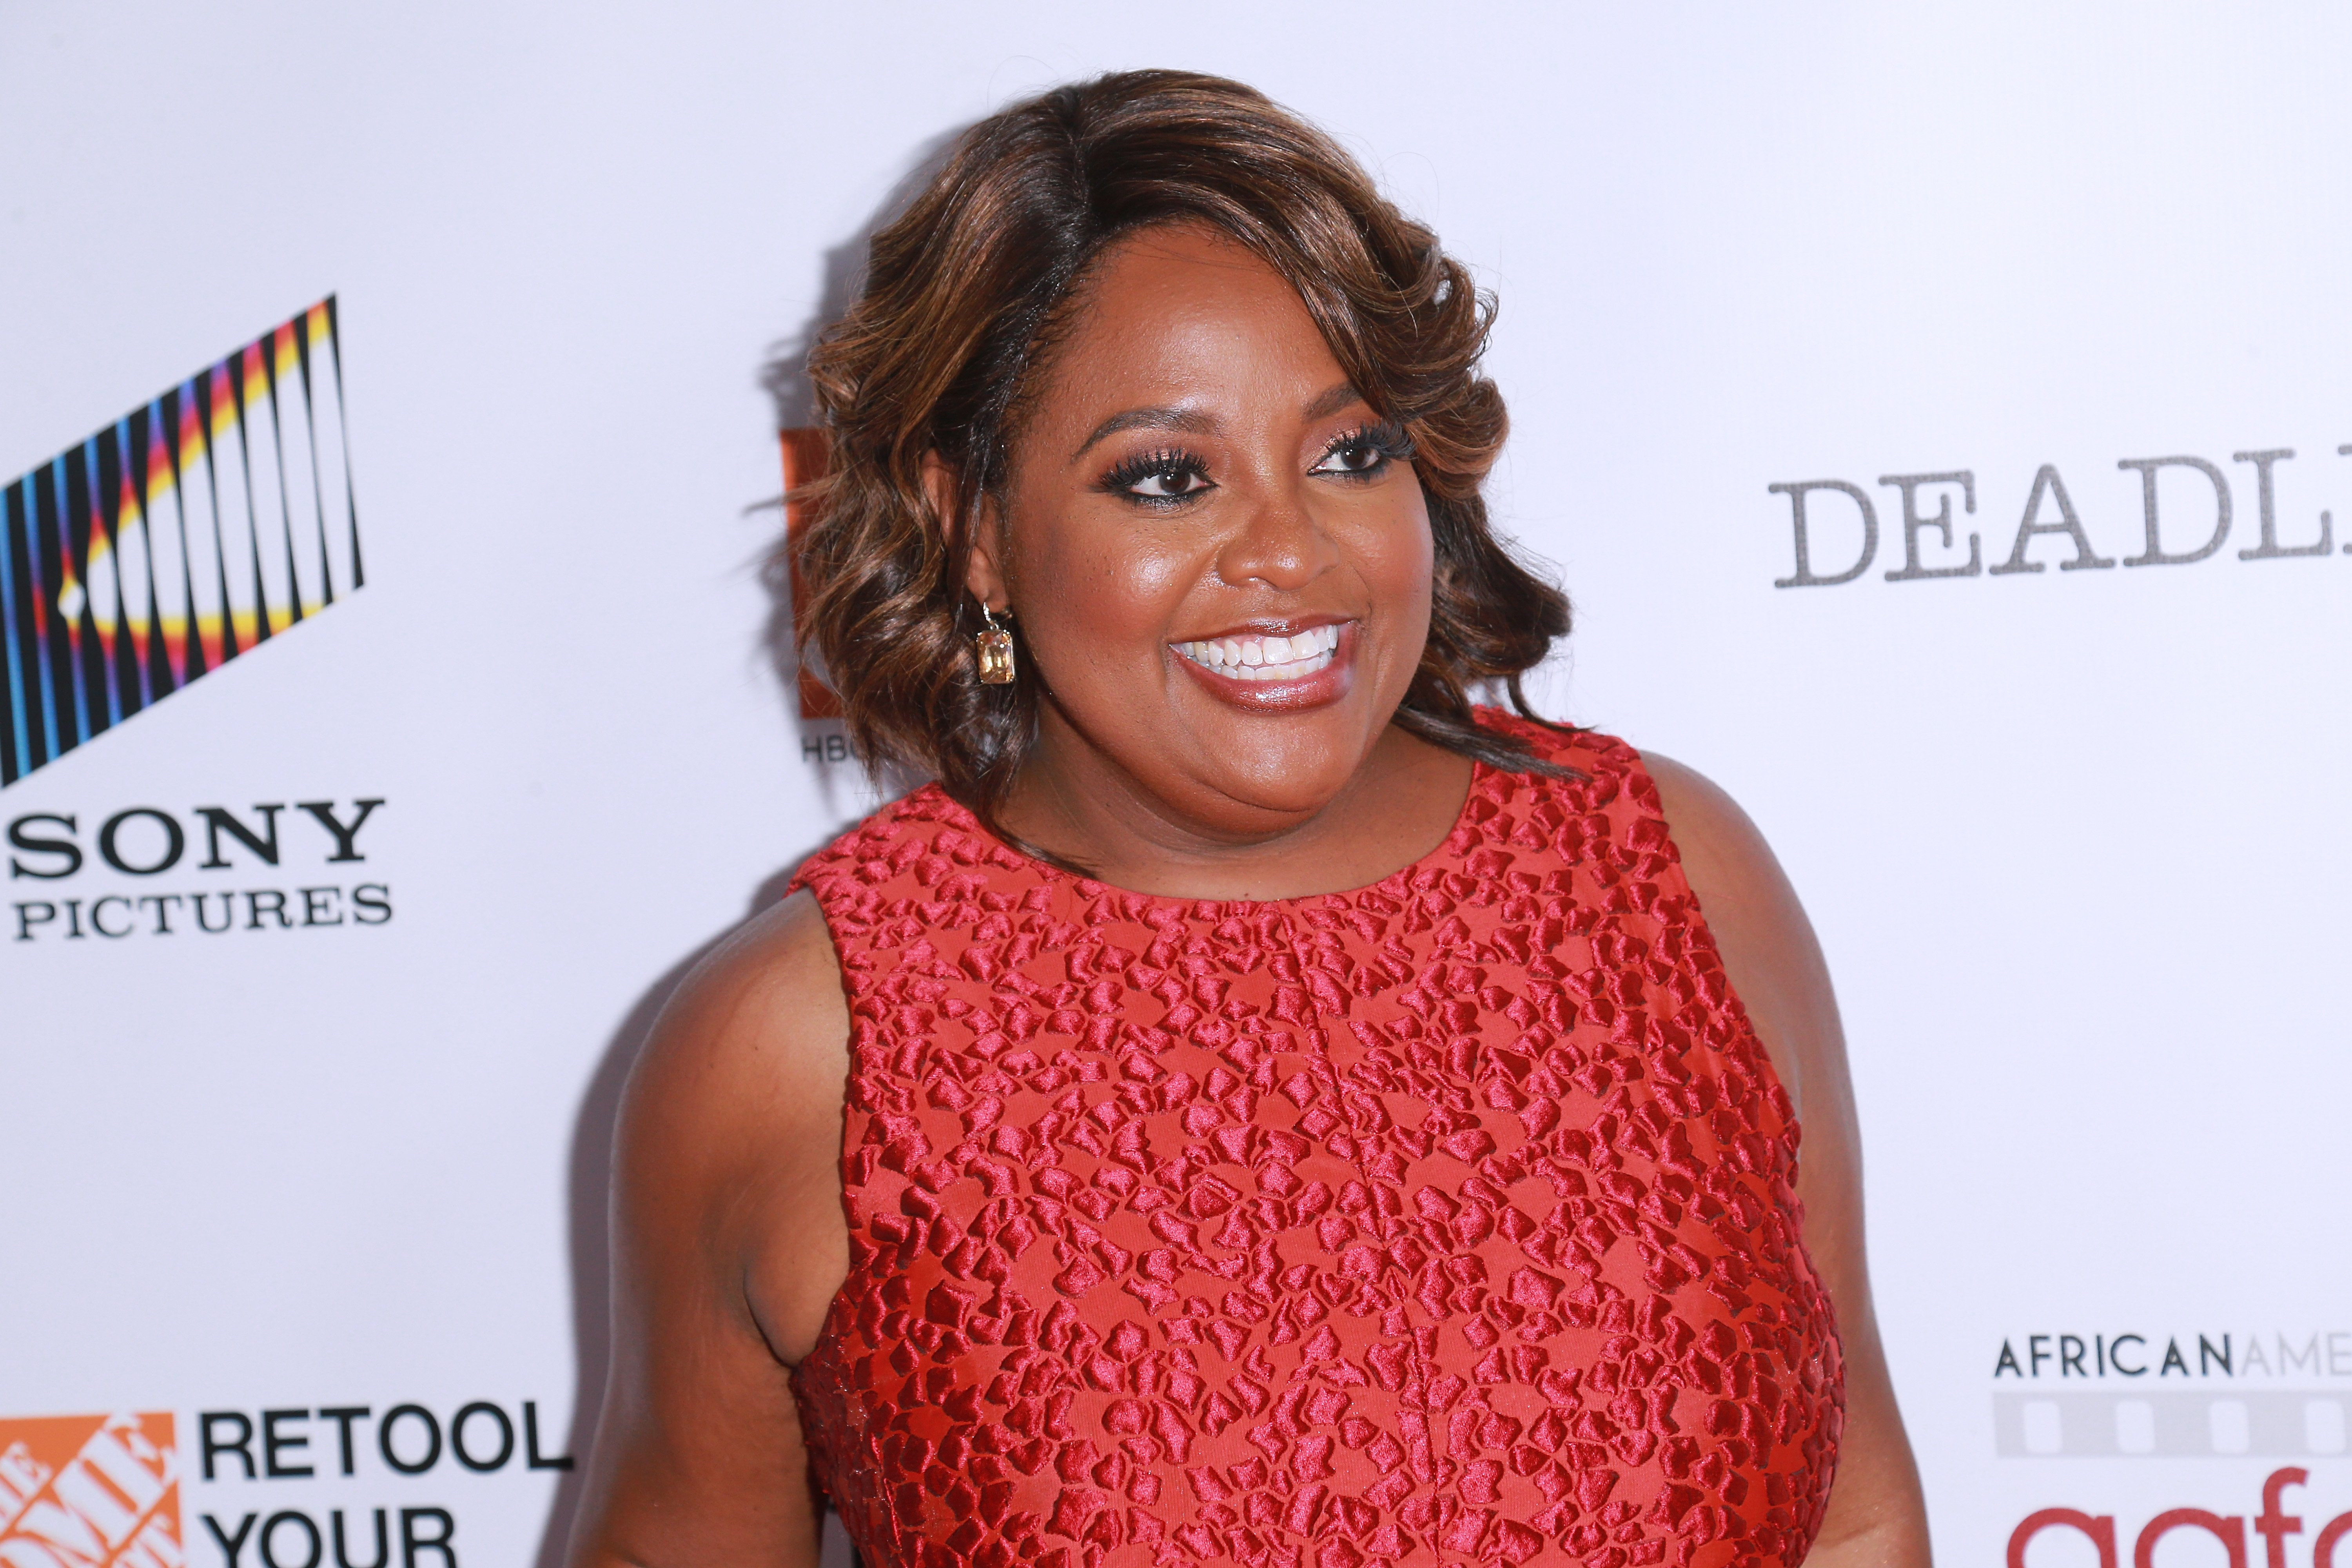 Sherri Shepherd at the 9th Annual AAFCA Awards in February 2018. | Photo: Getty Images